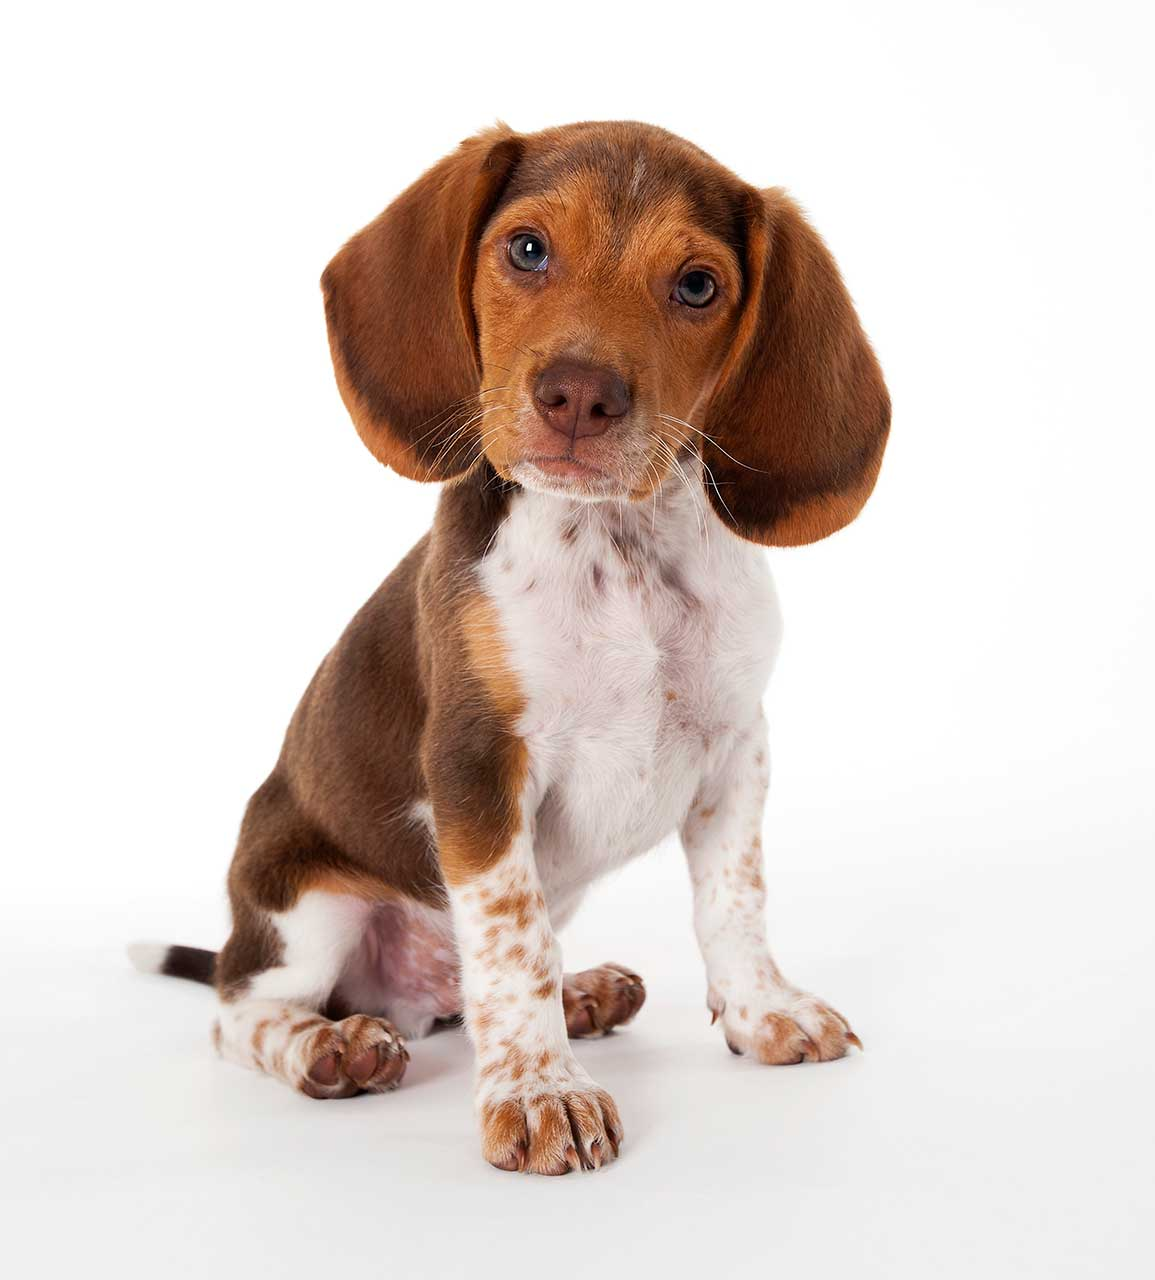 Brown and white puppy breeds